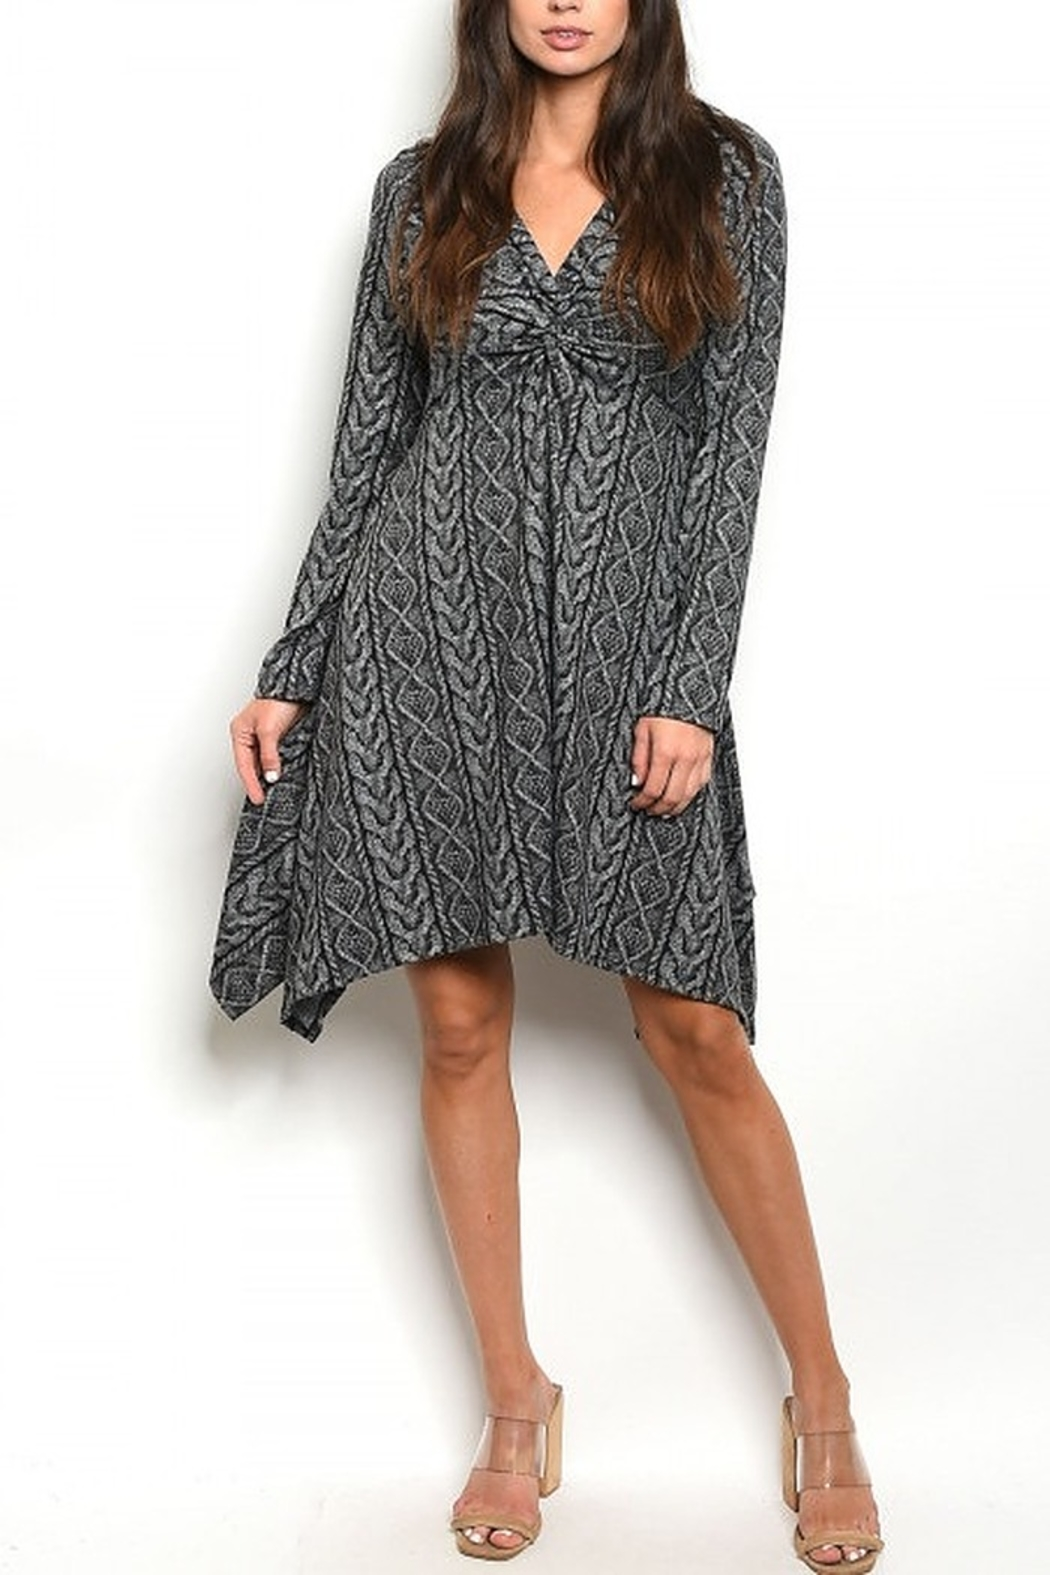 Lyn -Maree's Vertical Pattern Dress - Main Image